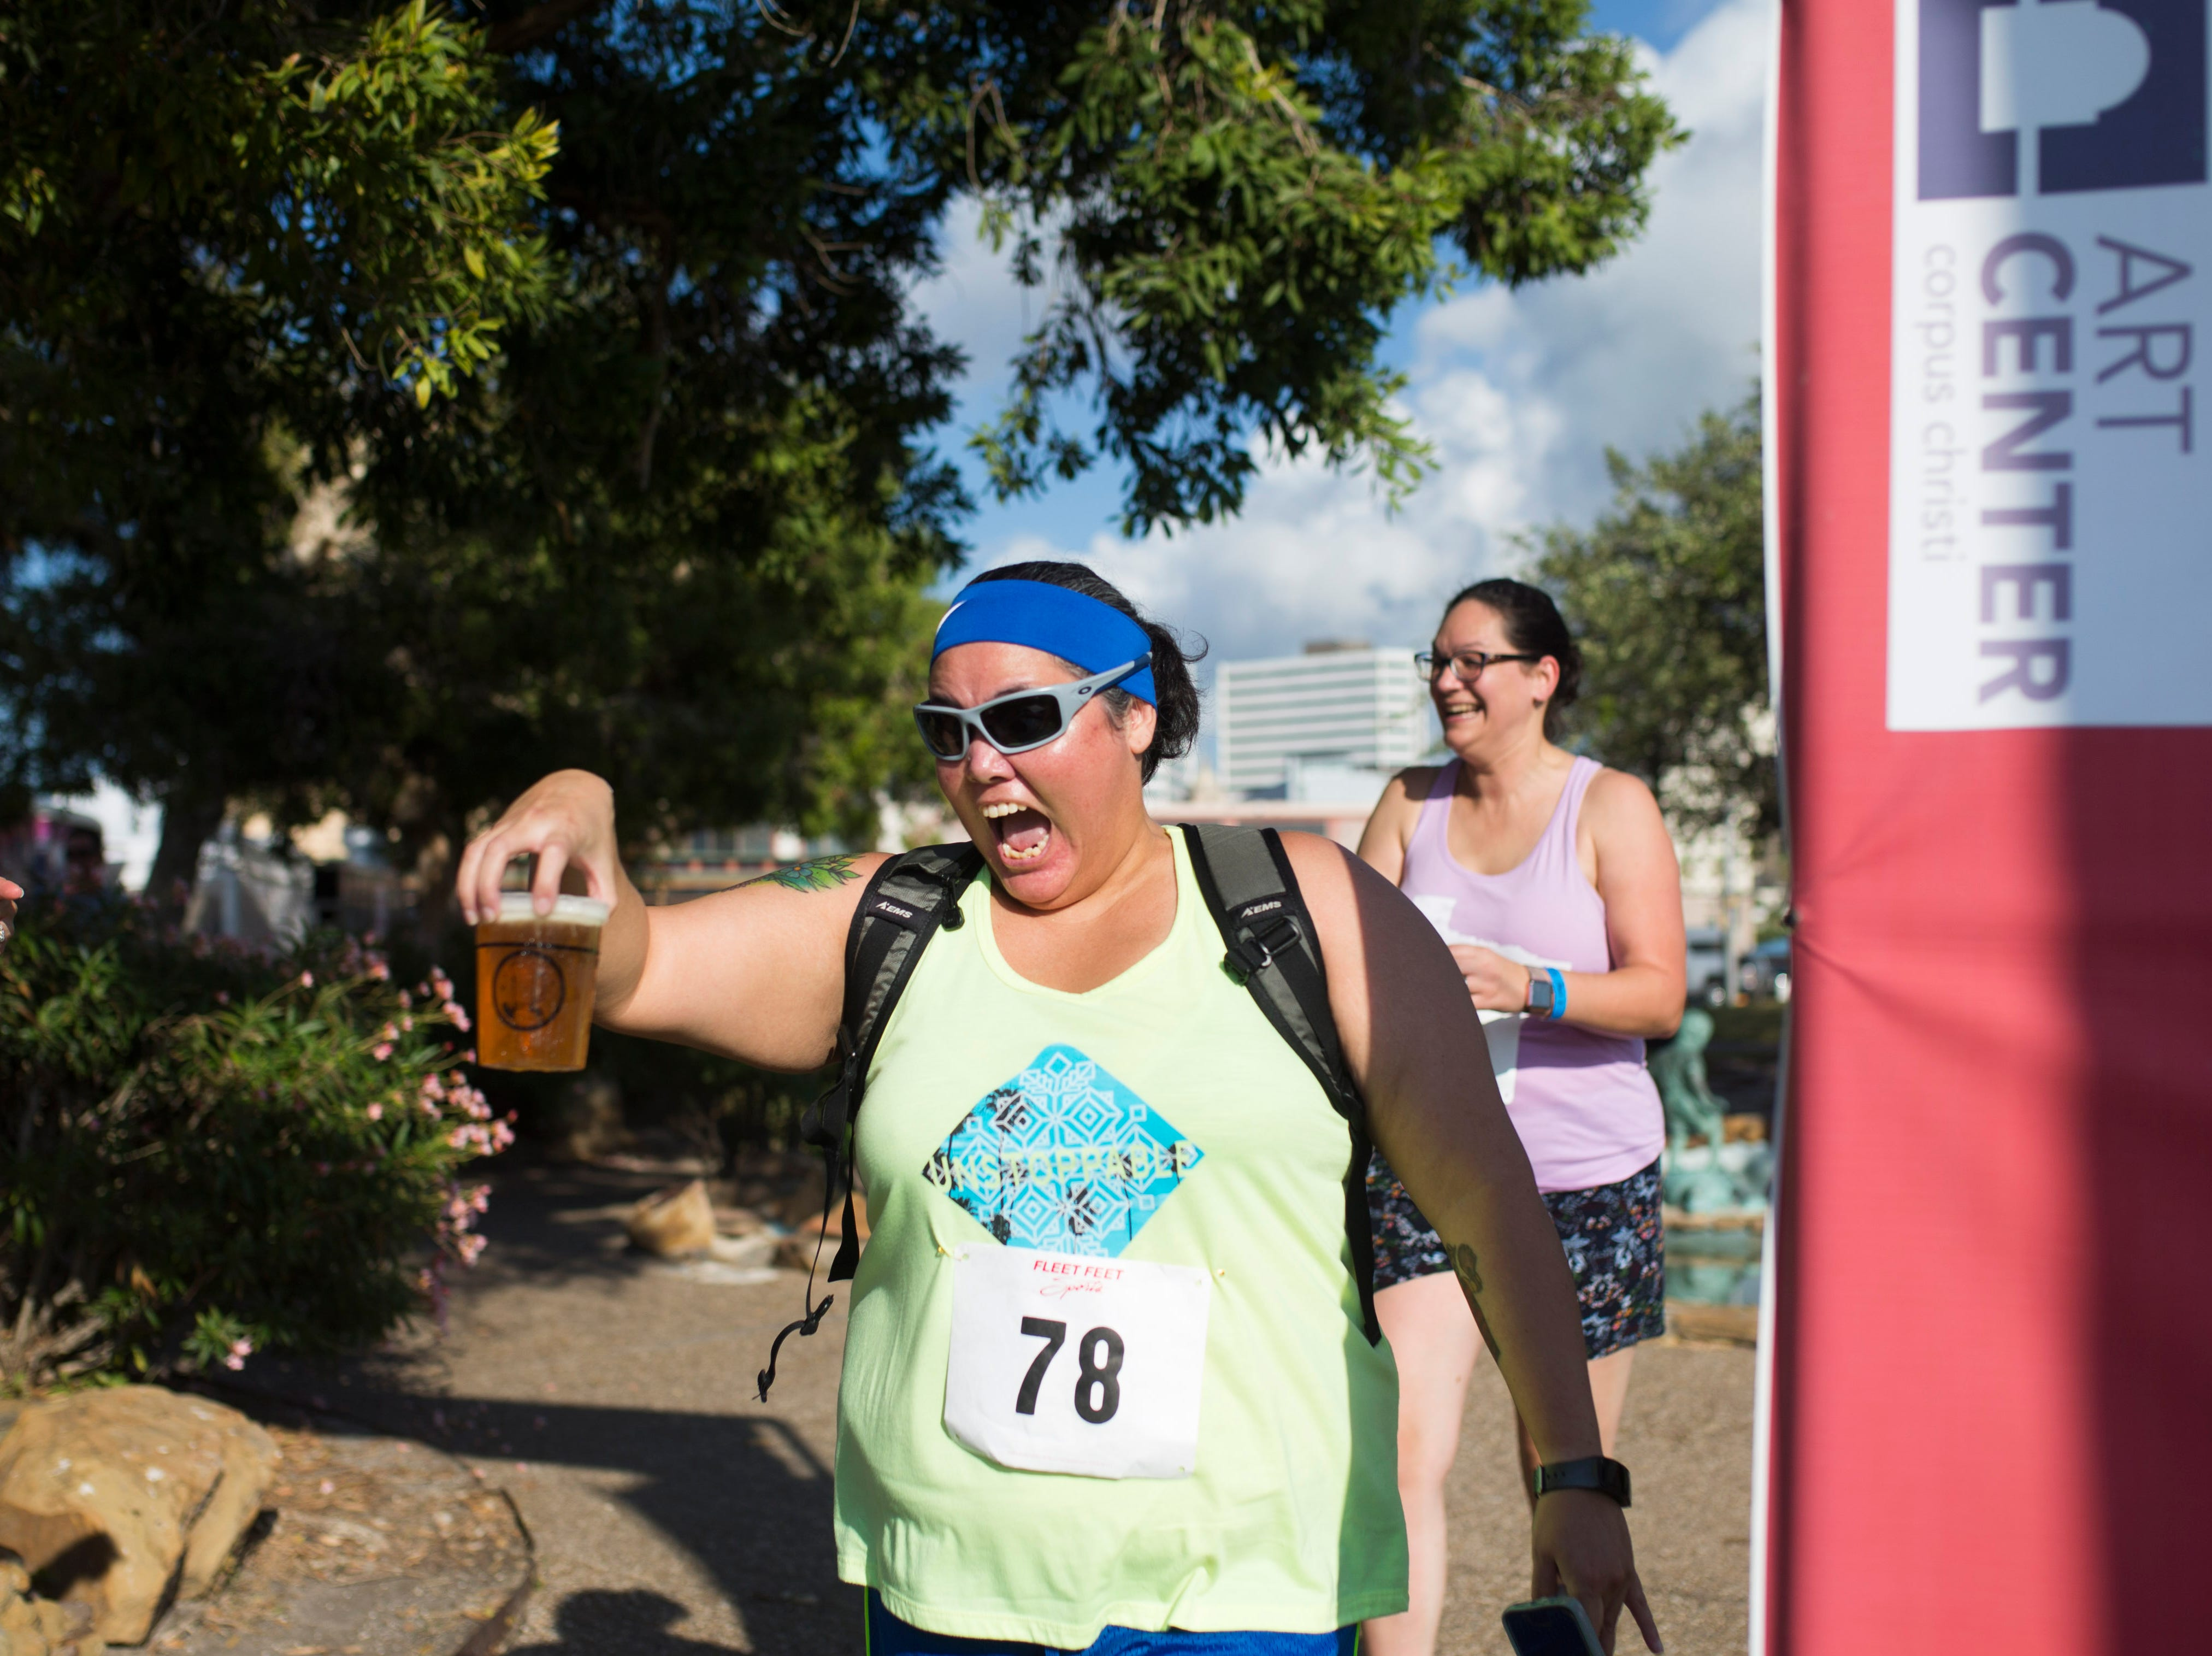 """Angelica """"yogi"""" Orr finishes in the 1/2 K By the Bay Beer Run during the annual Arts Alive Festival at the Art Center of Corpus Christi on Saturday, Sep. 1, 2018."""